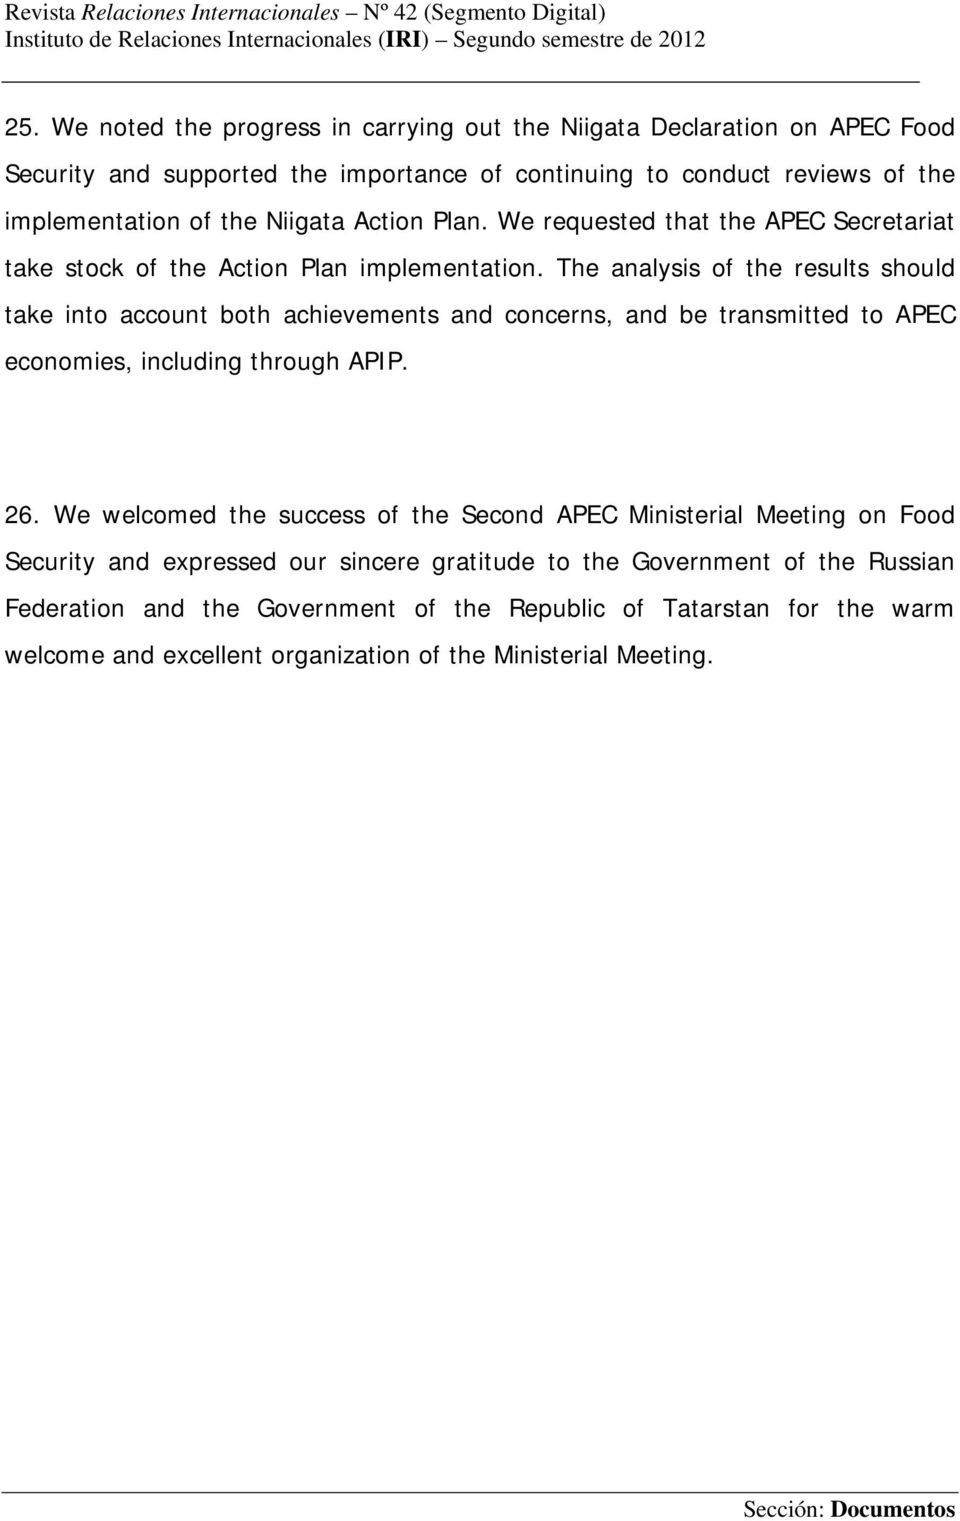 The analysis of the results should take into account both achievements and concerns, and be transmitted to APEC economies, including through APIP. 26.